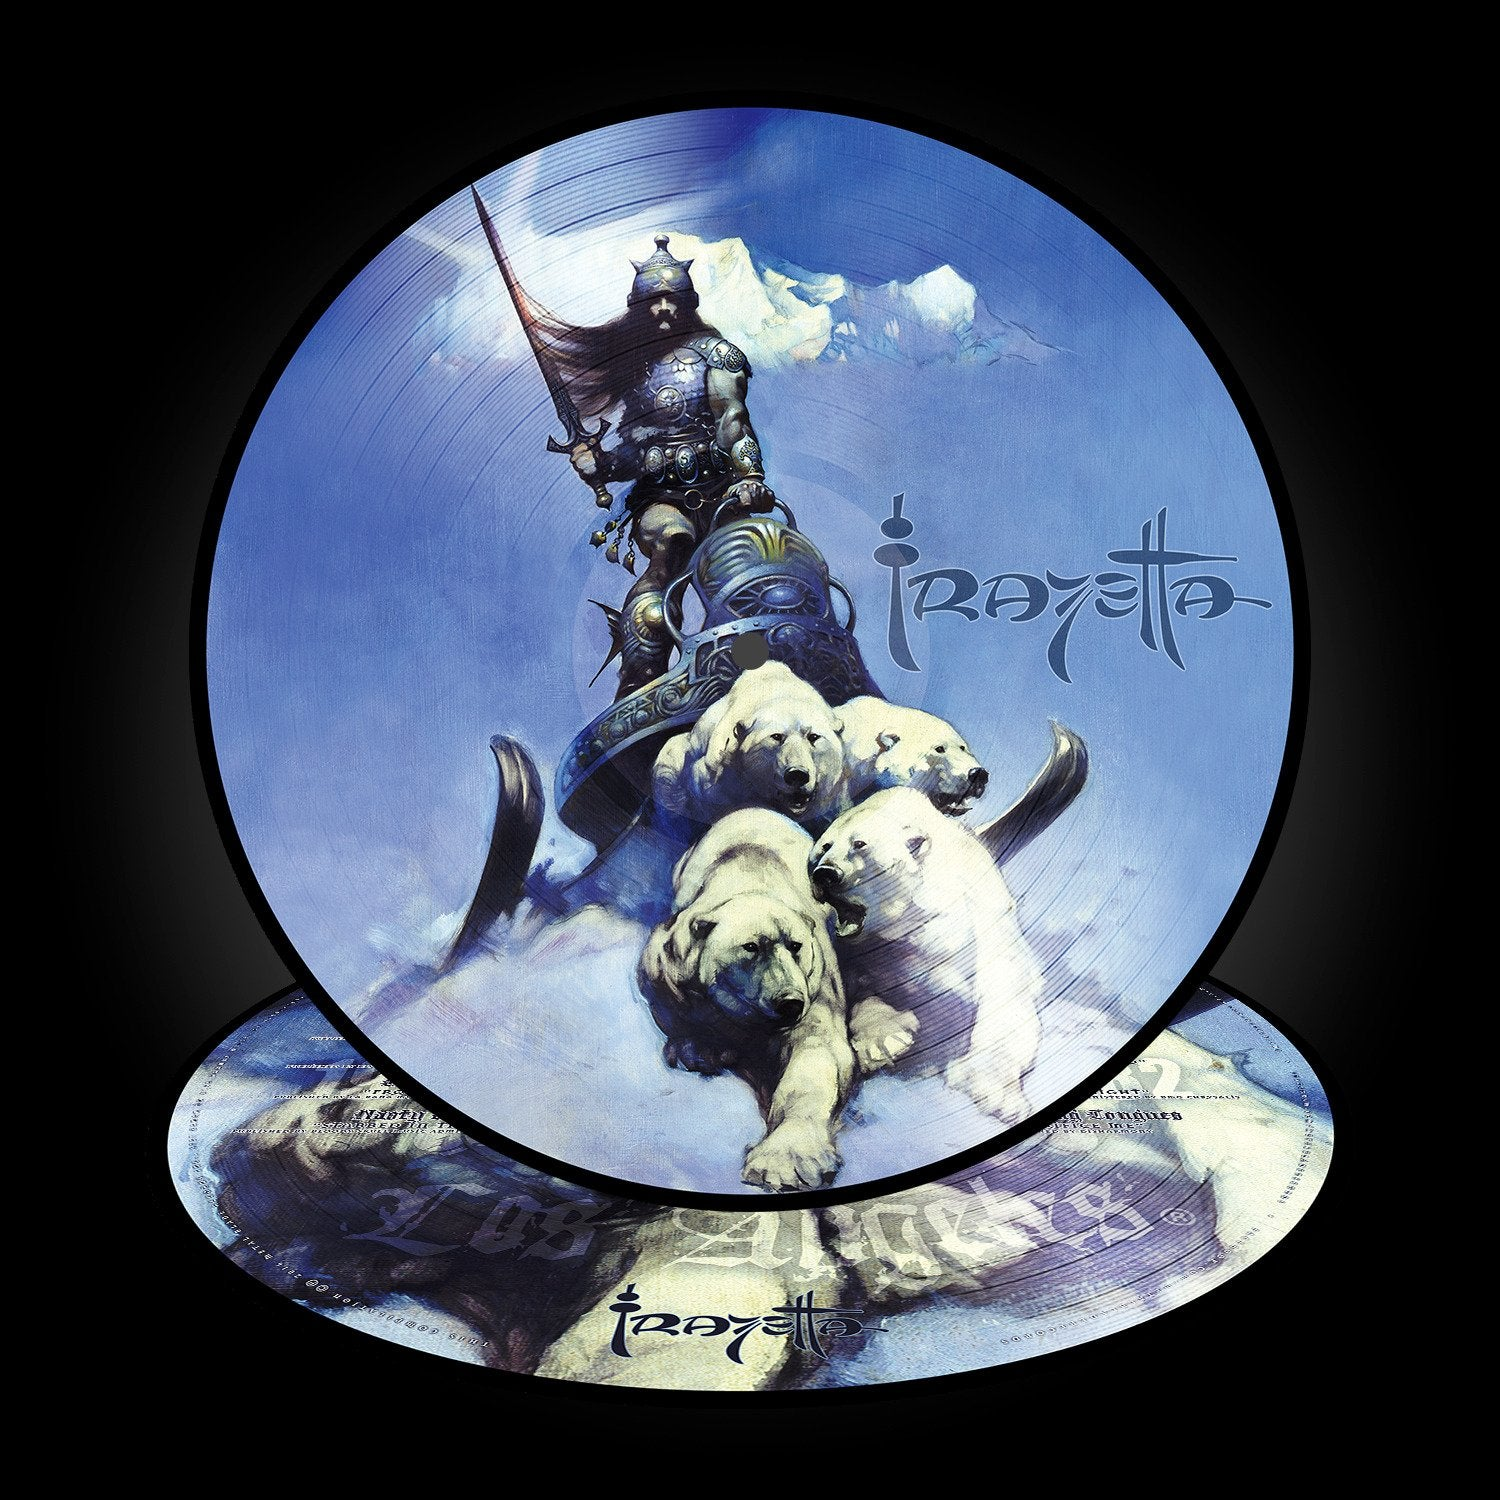 Frazetta/Picture Disc [LP]